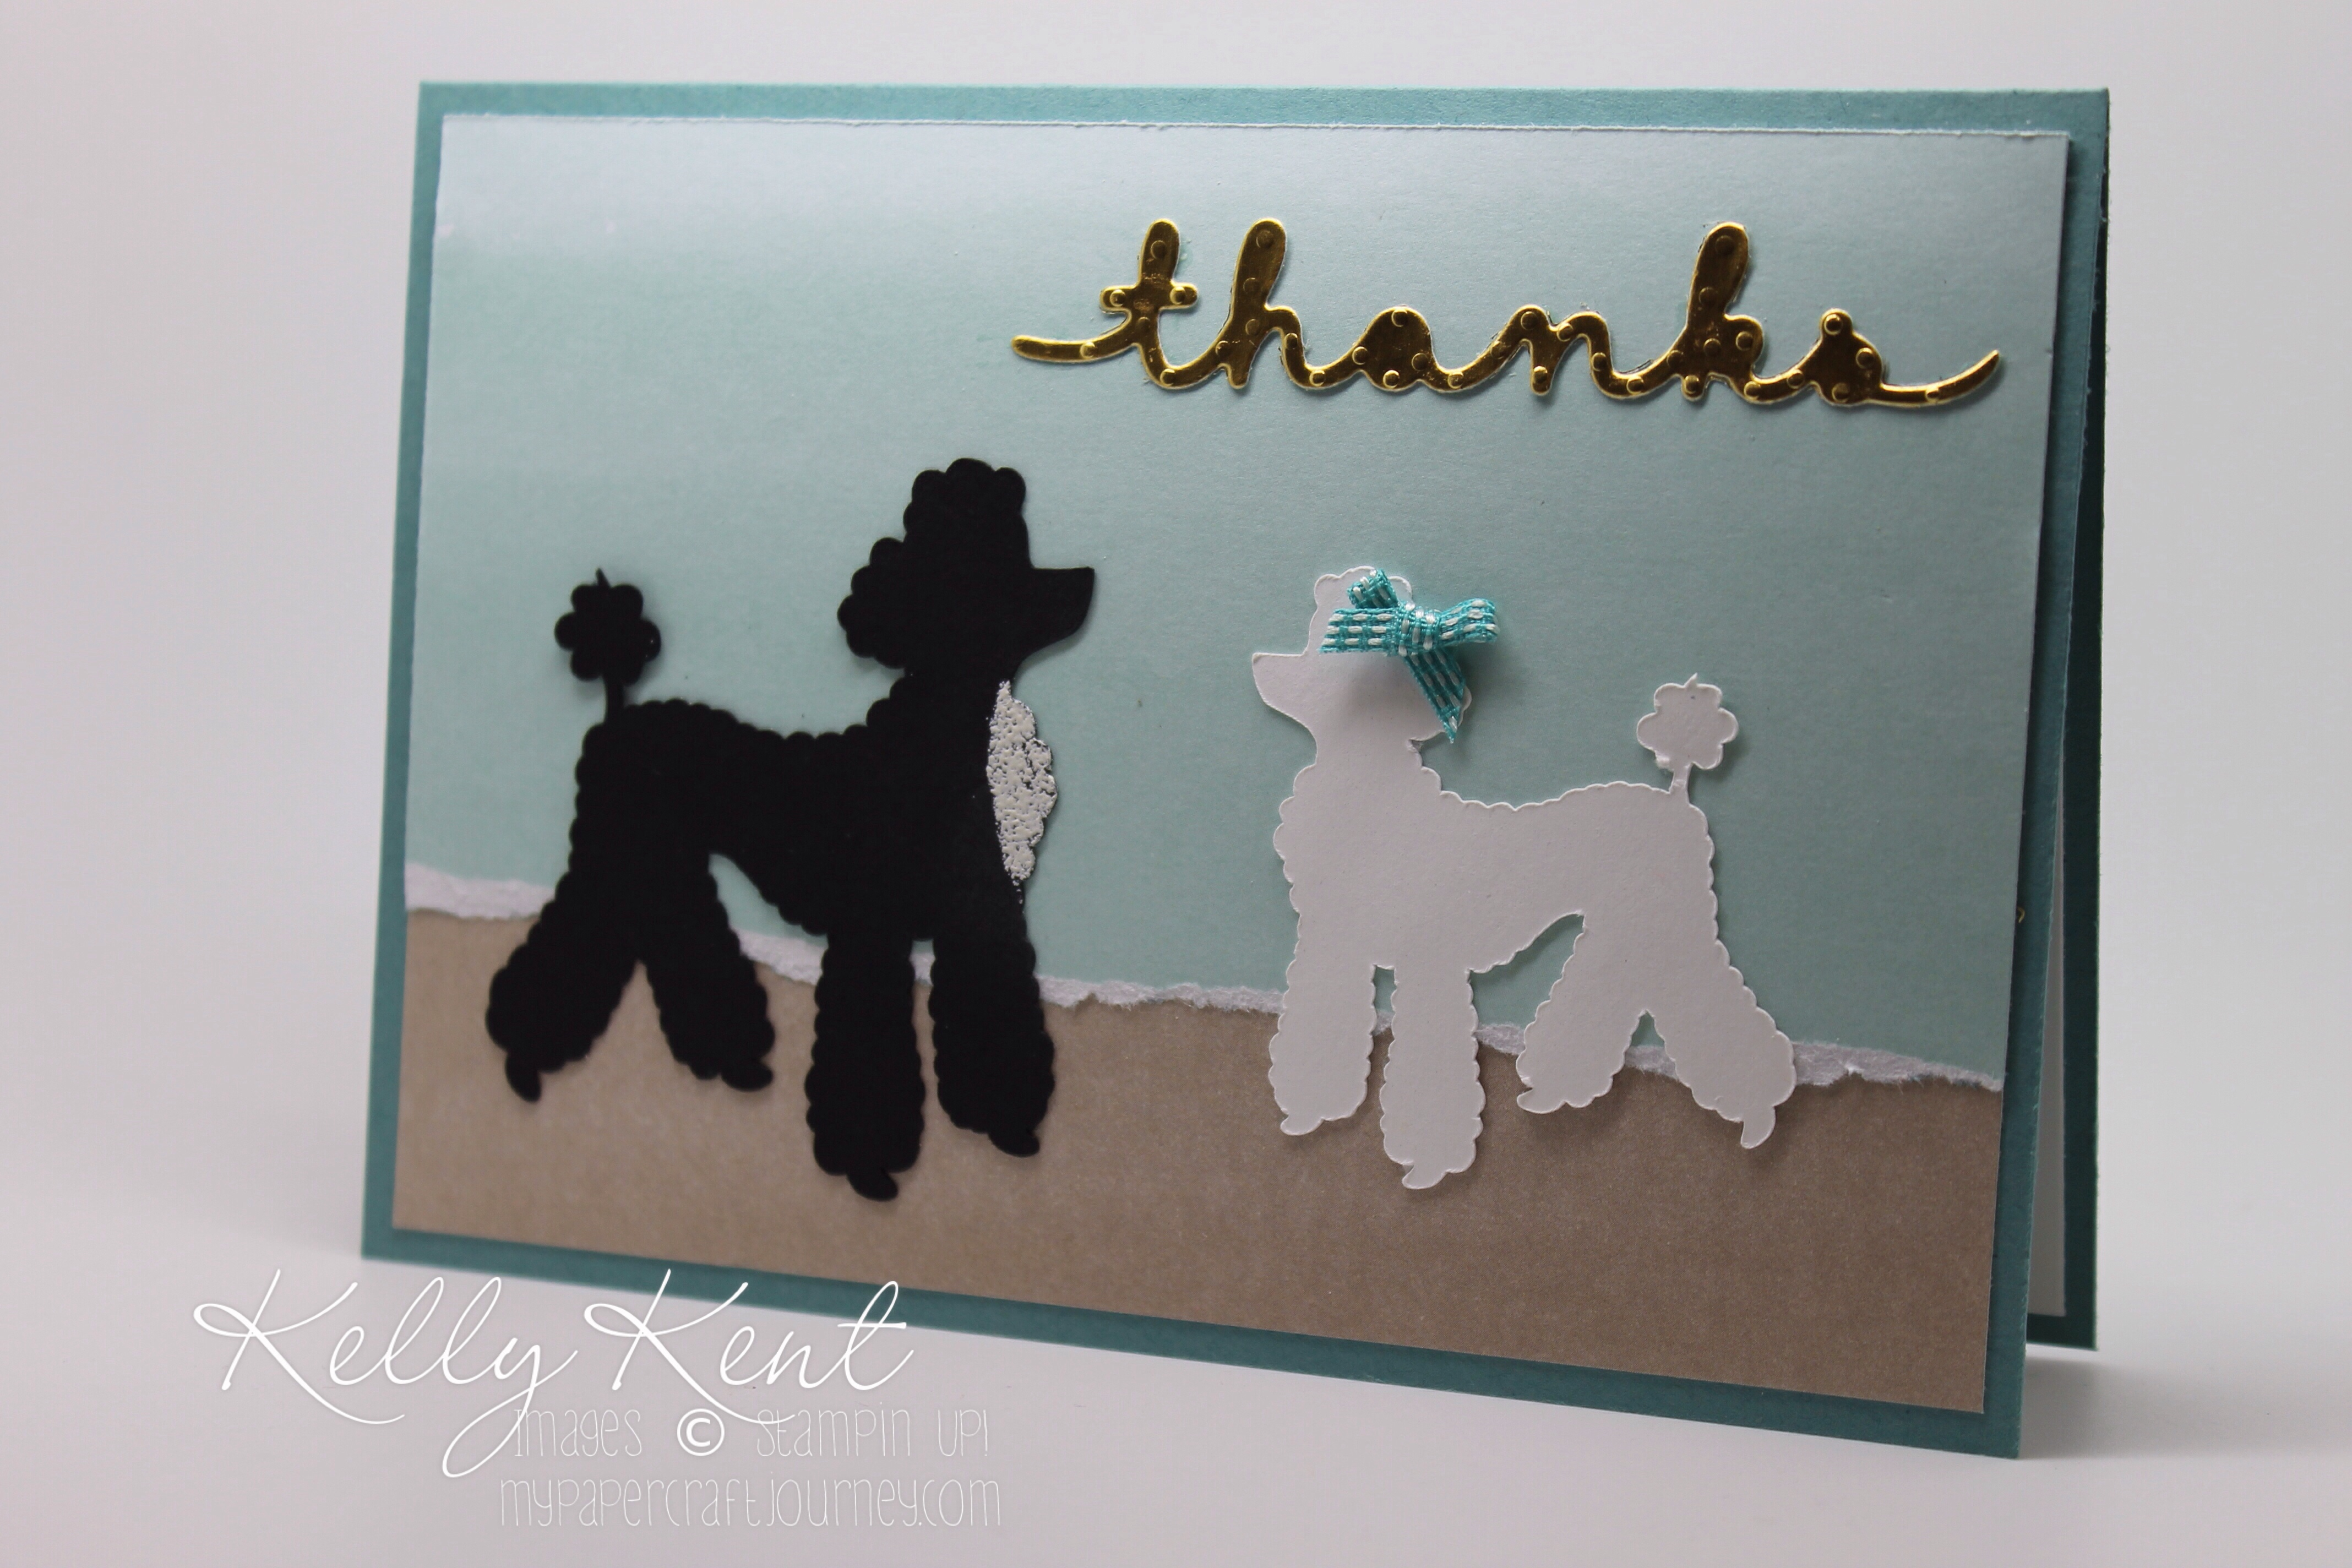 Perfect Poodles featuring Perfectly Artistic DSP - Kelly Kent, mypapercraftjourney.com.